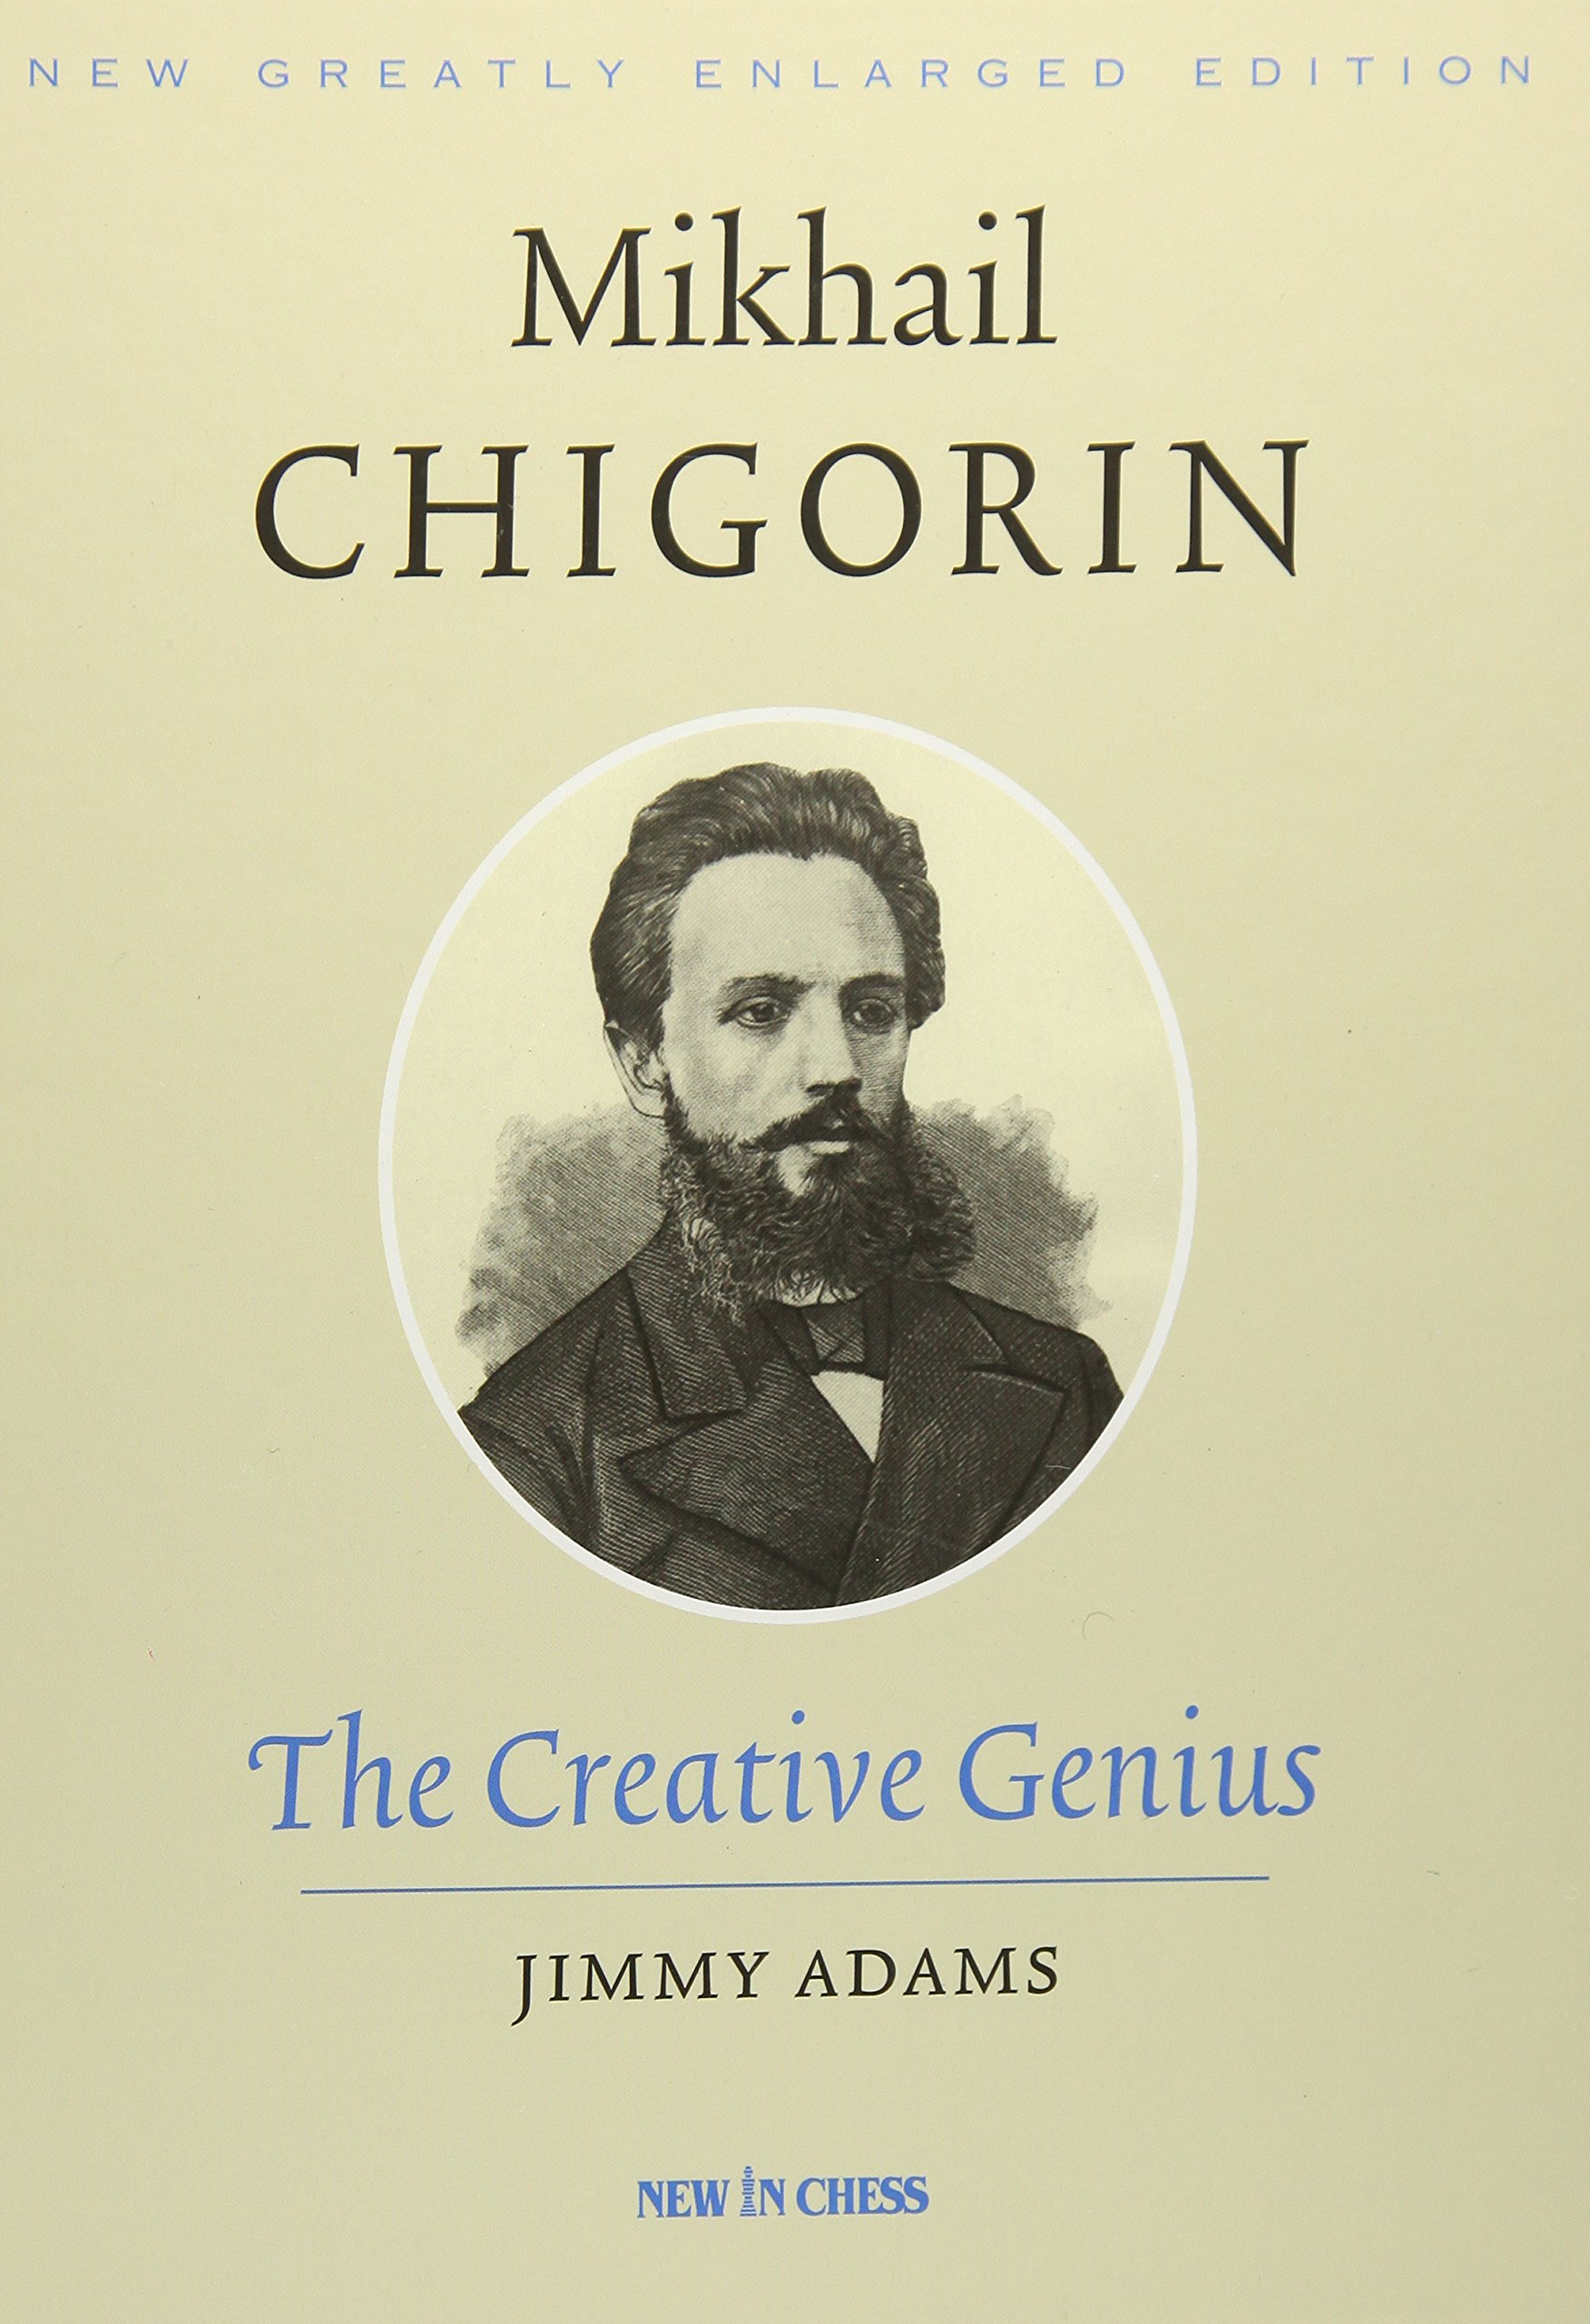 Mikhail Chigorin, the Creative Genius: New in Chess, Jimmy Adams, 2016